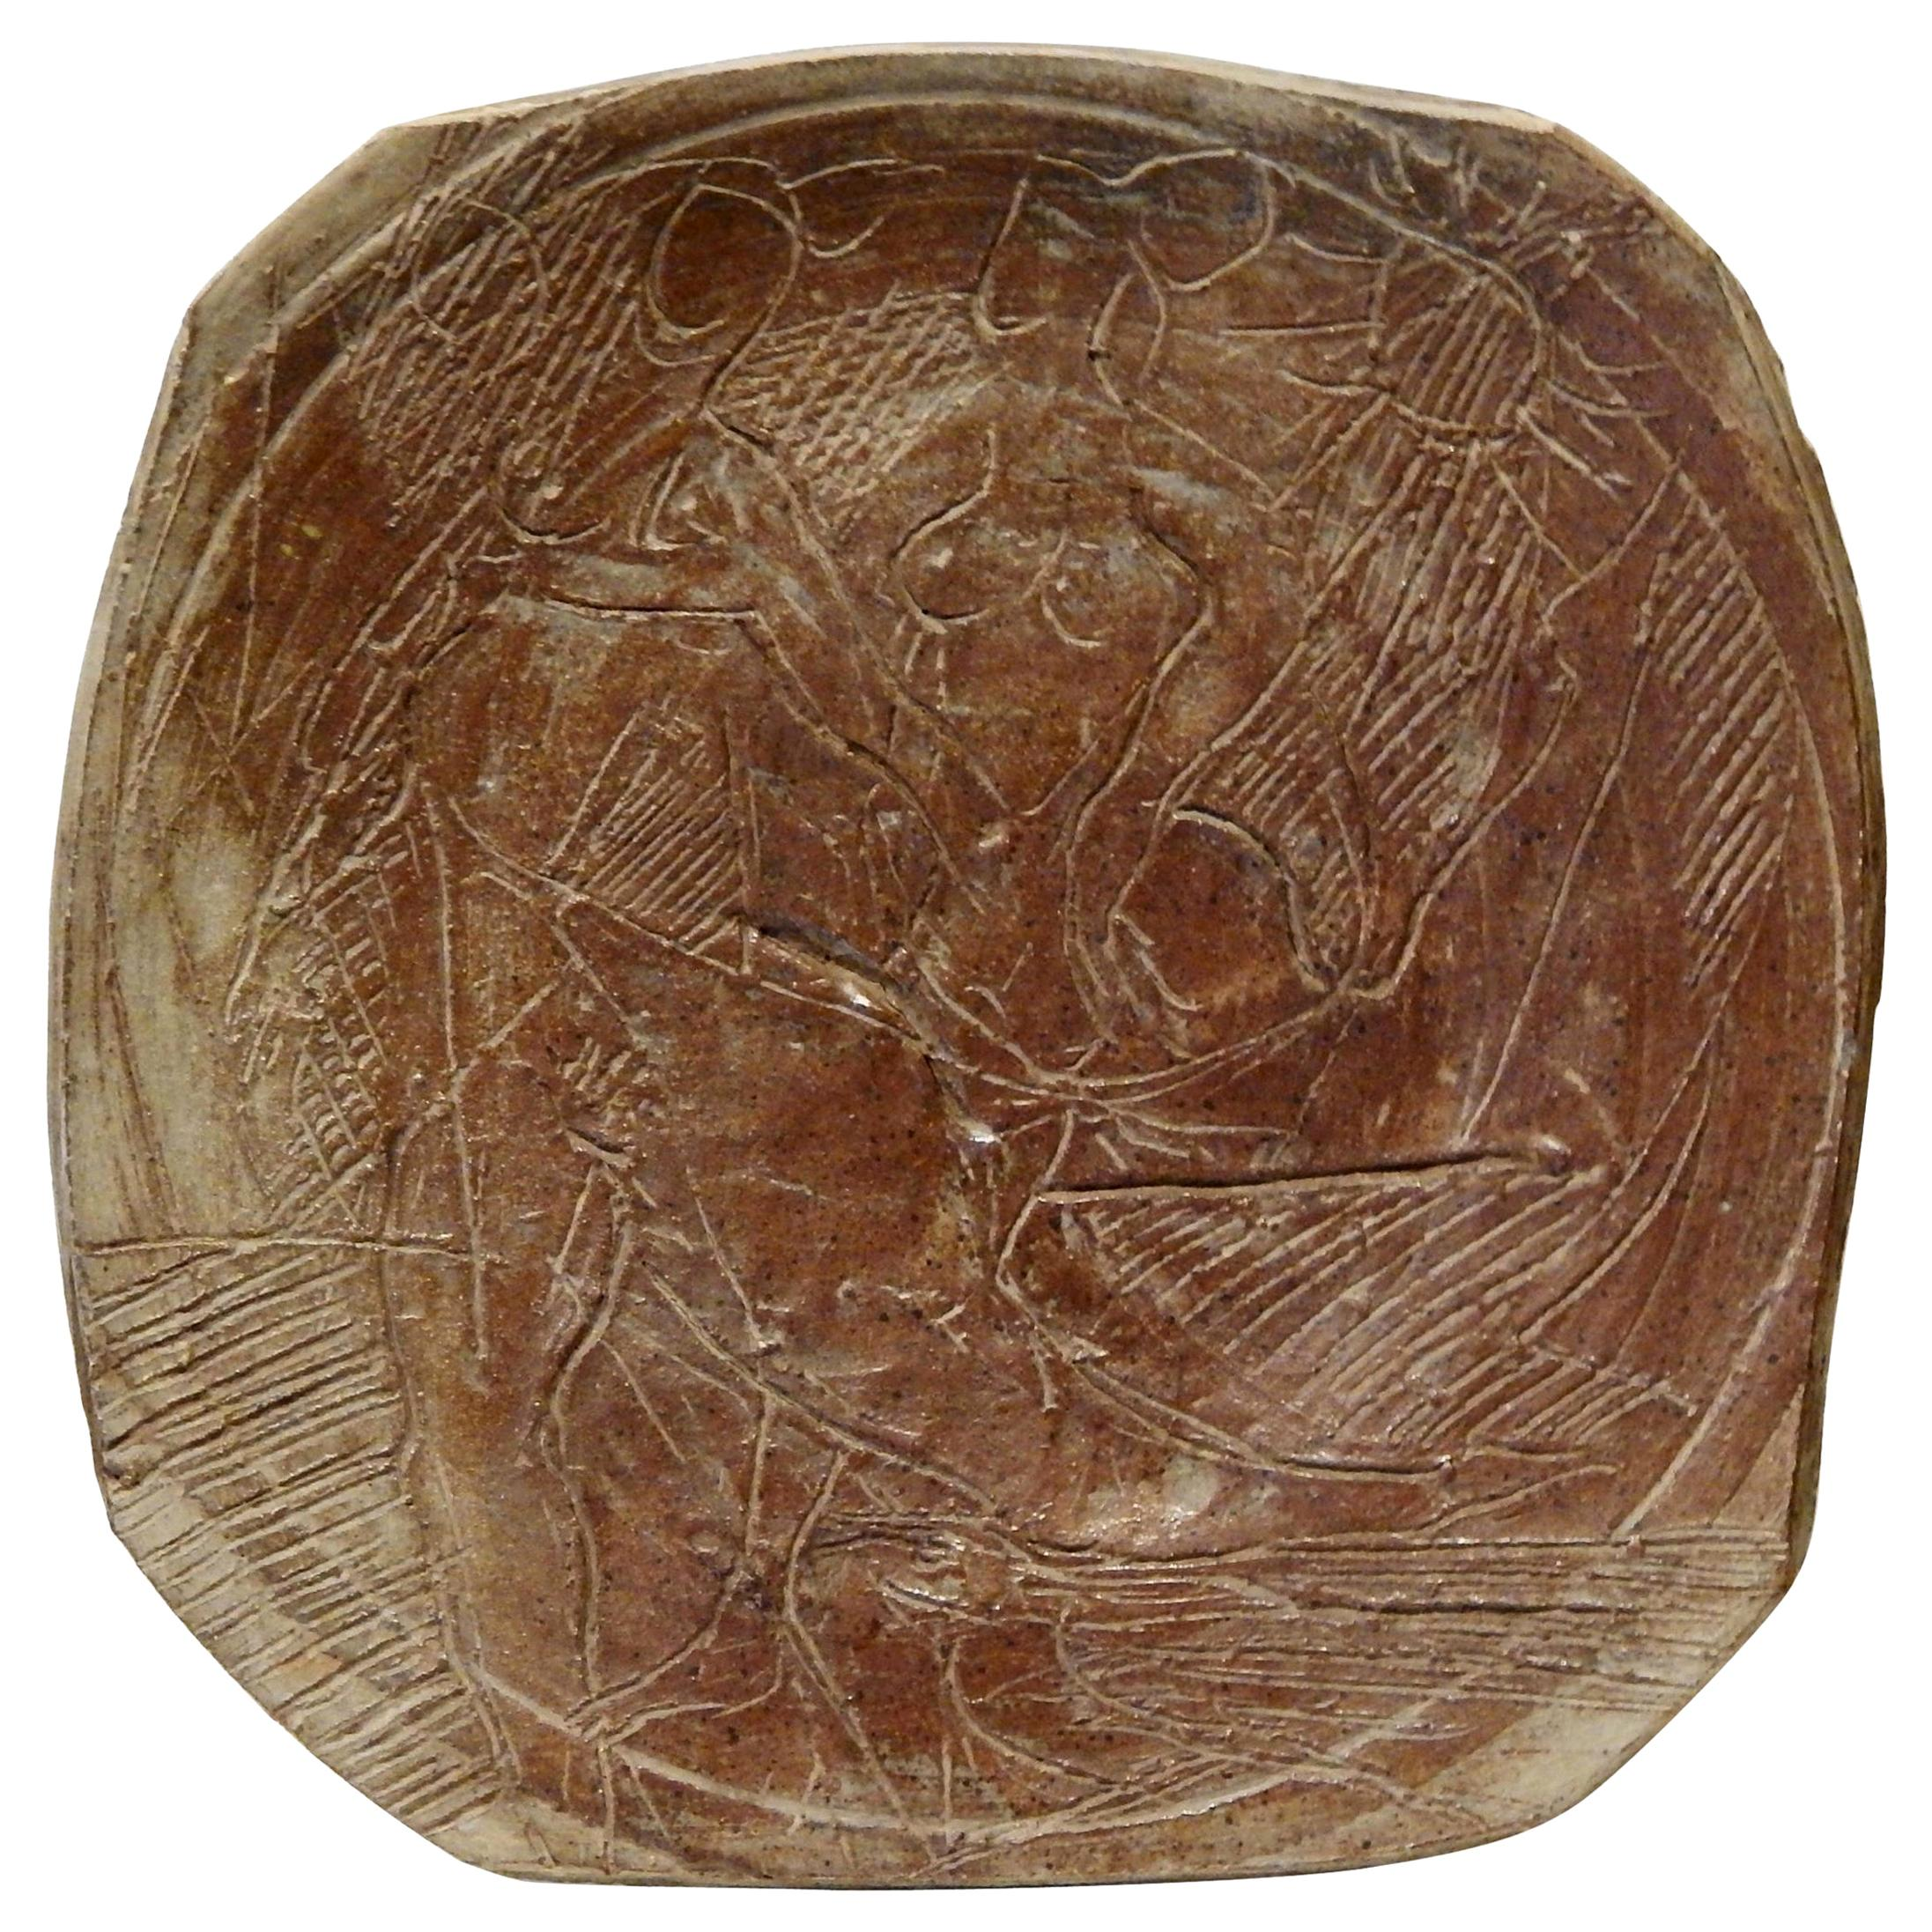 Peter Voulkos American Studio Potter, Large Charger, circa 1950-1955